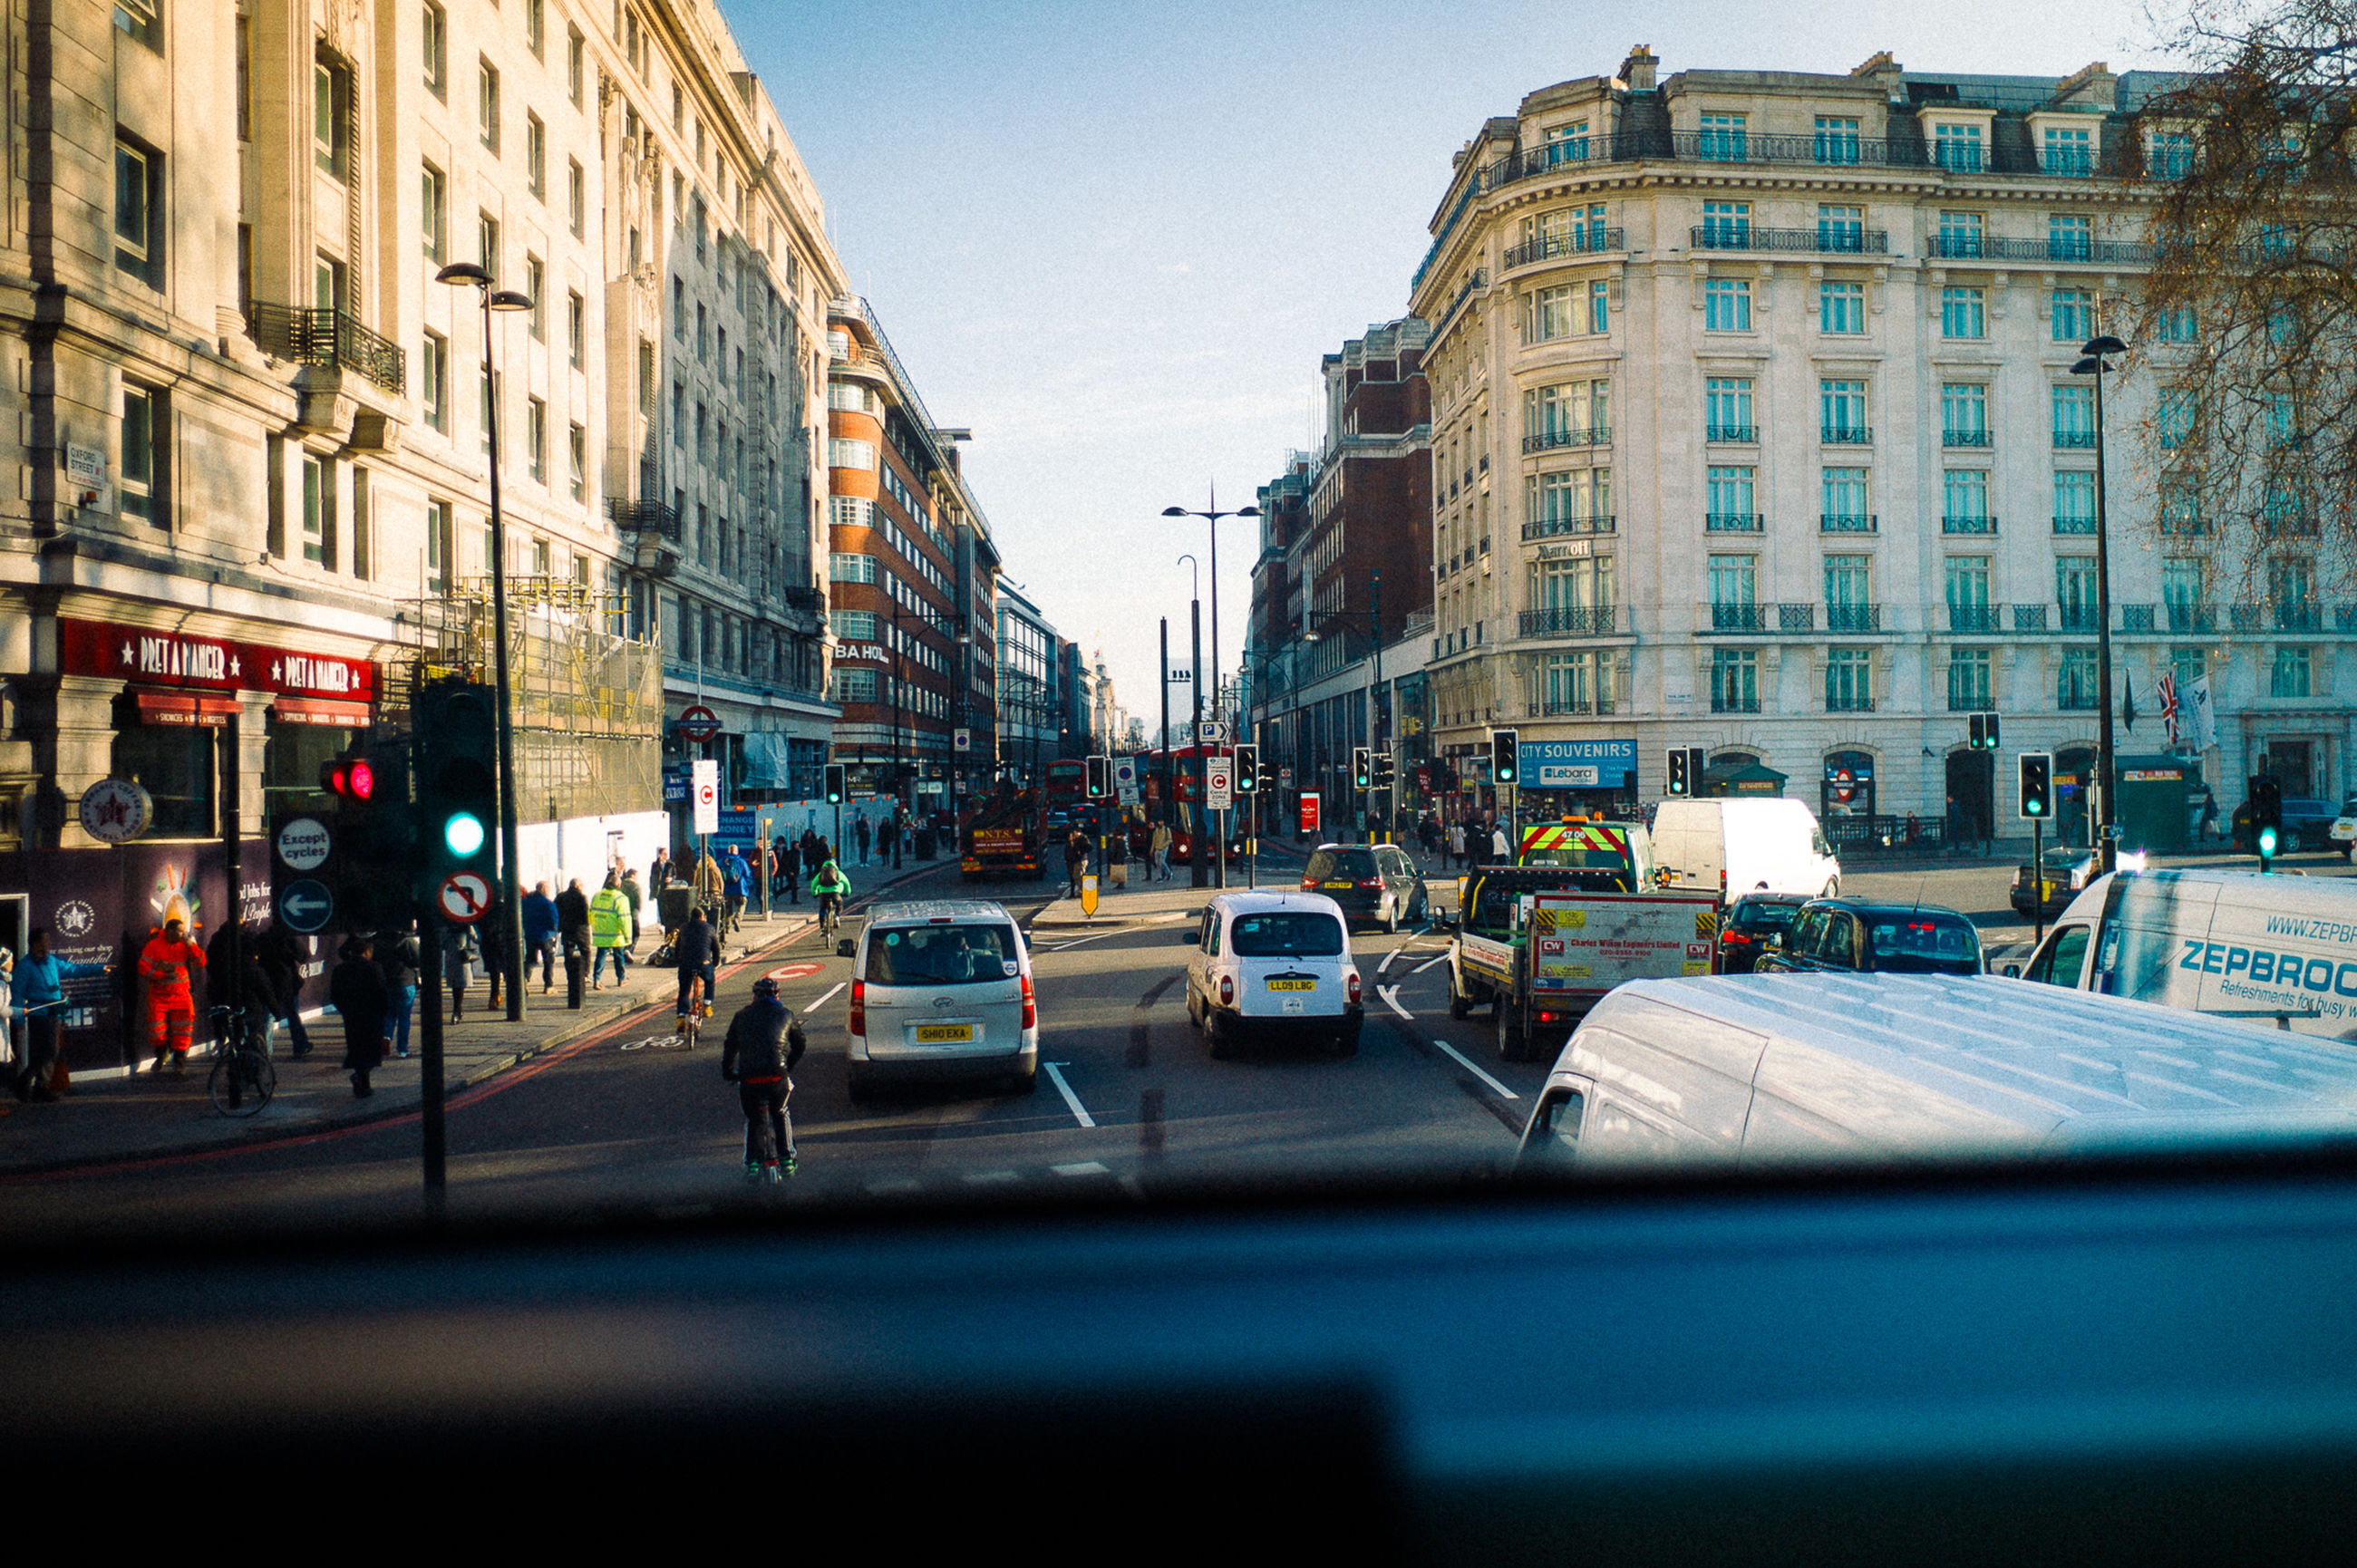 city, car, street, city street, transportation, city life, mode of transport, building exterior, built structure, architecture, yellow taxi, outdoors, sky, no people, day